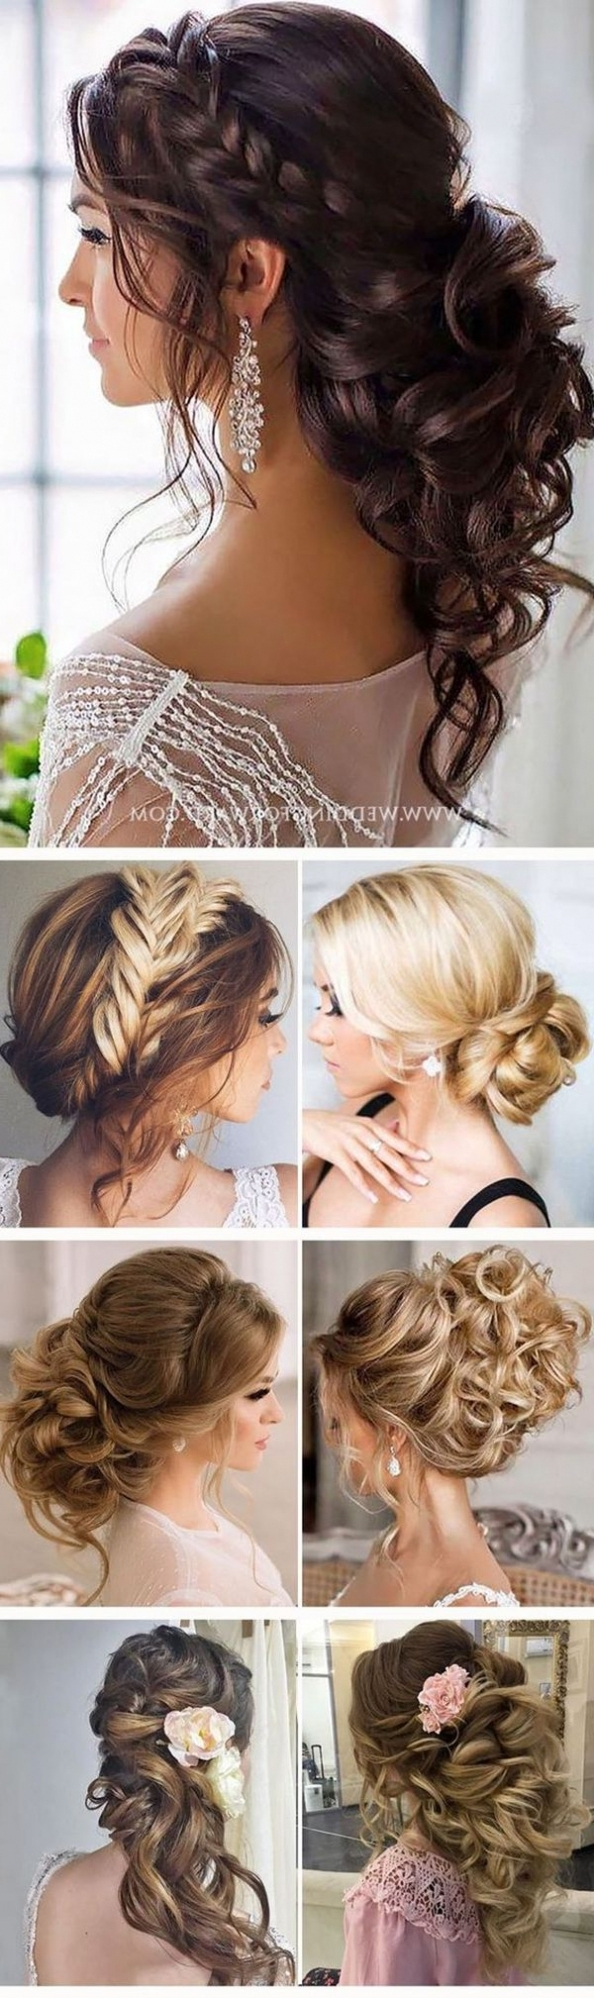 Hairstyles ~ Easy Updo Hairstyles For Long Hair Pinterest Archives Throughout Easy Updos For Long Hair (View 12 of 15)